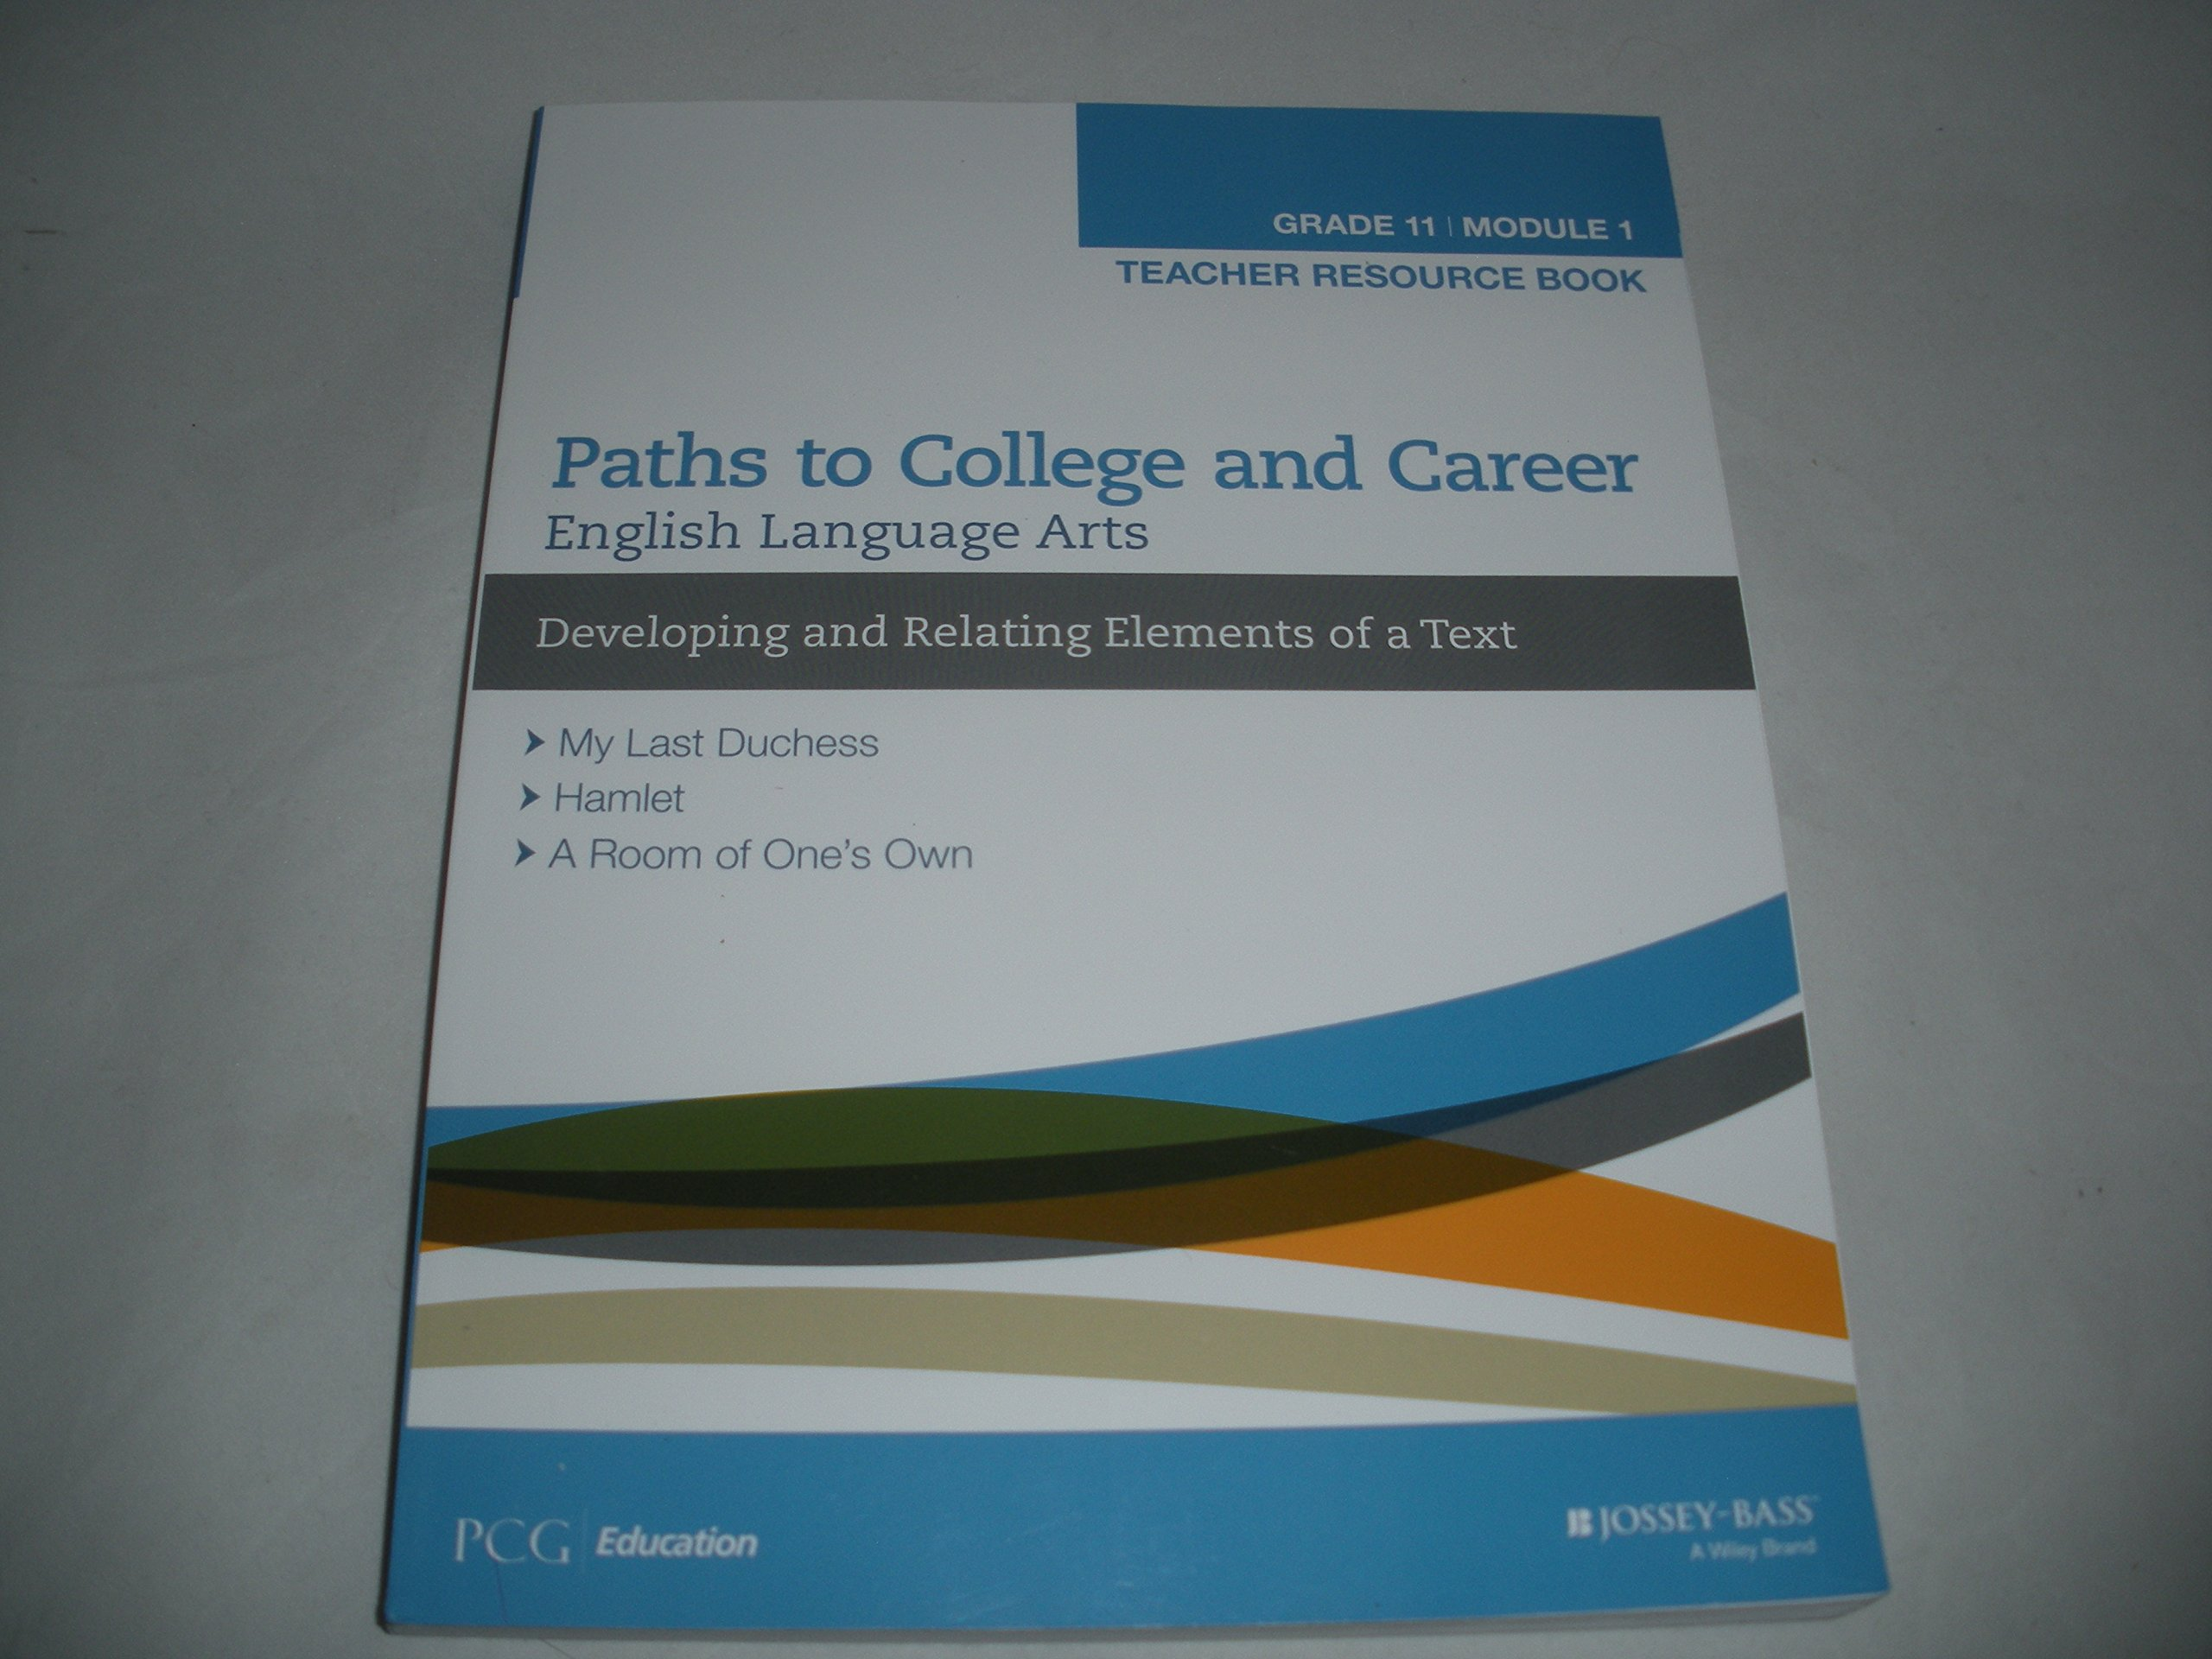 Paths to College and Career English Language Arts Developing and Relating Elements of a Text Grade 11 (Module 1) Teacher Resource Book ISBN-10: 1119123046 ISBN-13: 9781119123040 ebook